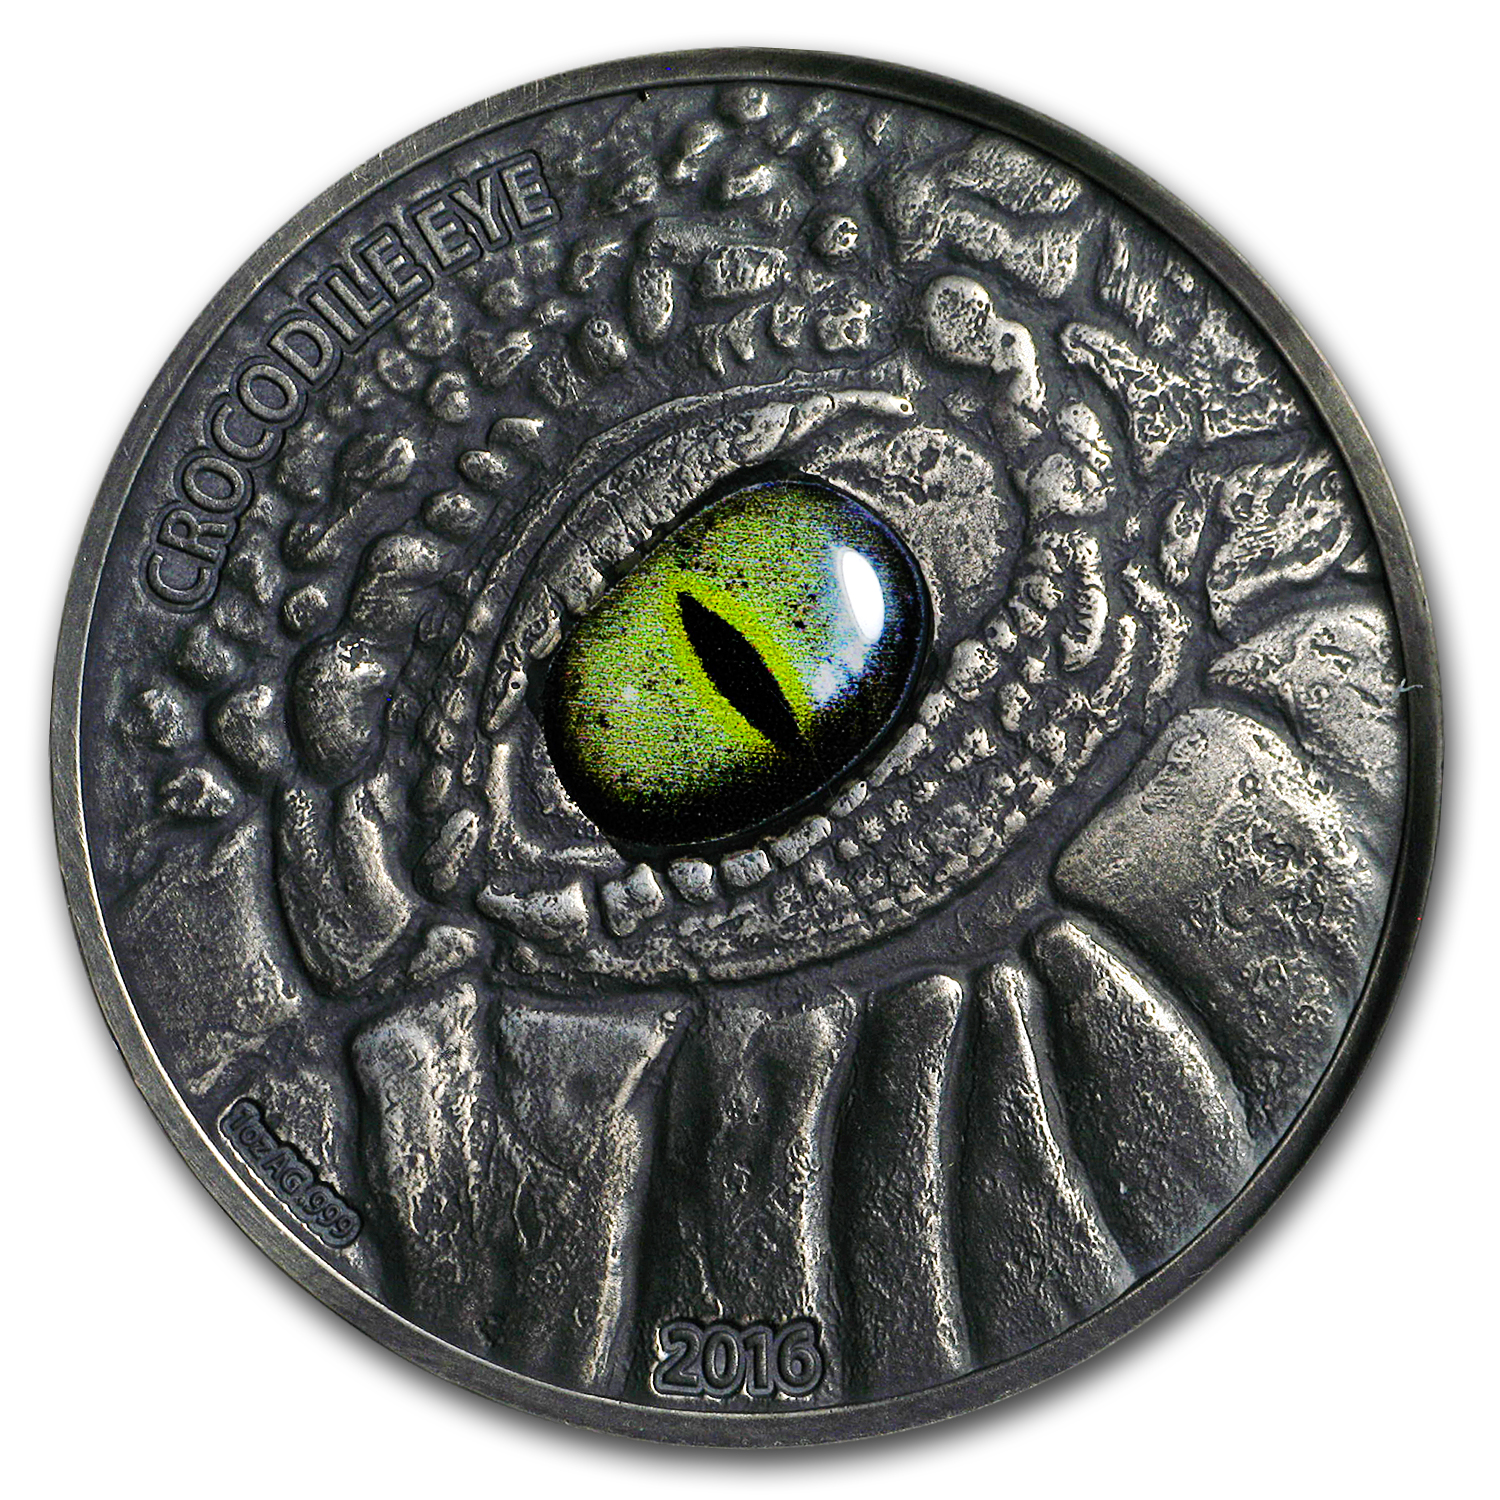 2016 Burkina Faso 1 oz Silver The Crocodile Eye